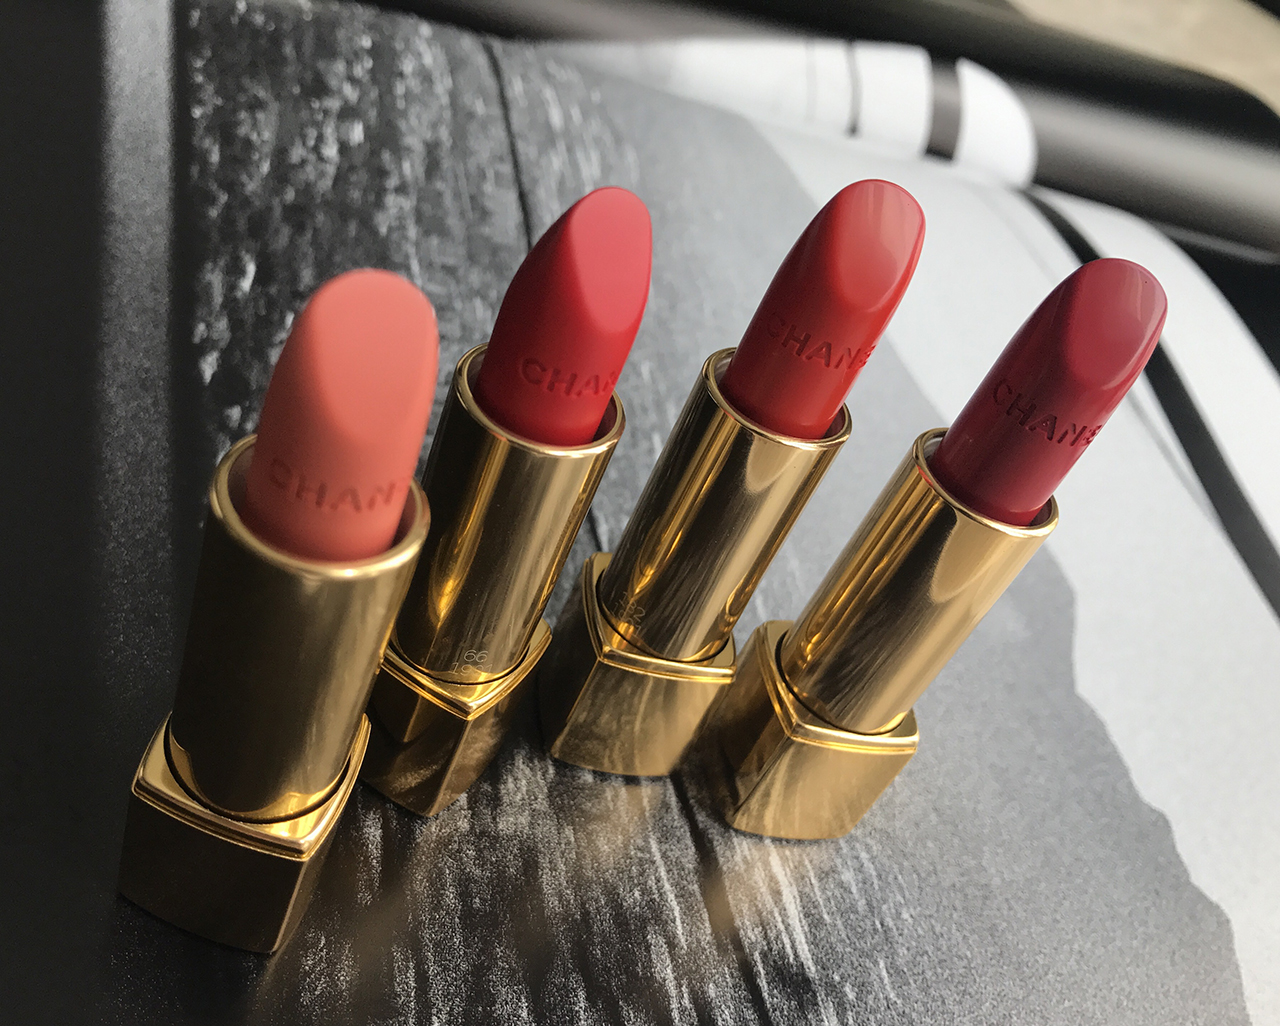 Chanel Rouge Allure & Rouge Allure Velvet for Spring 2018